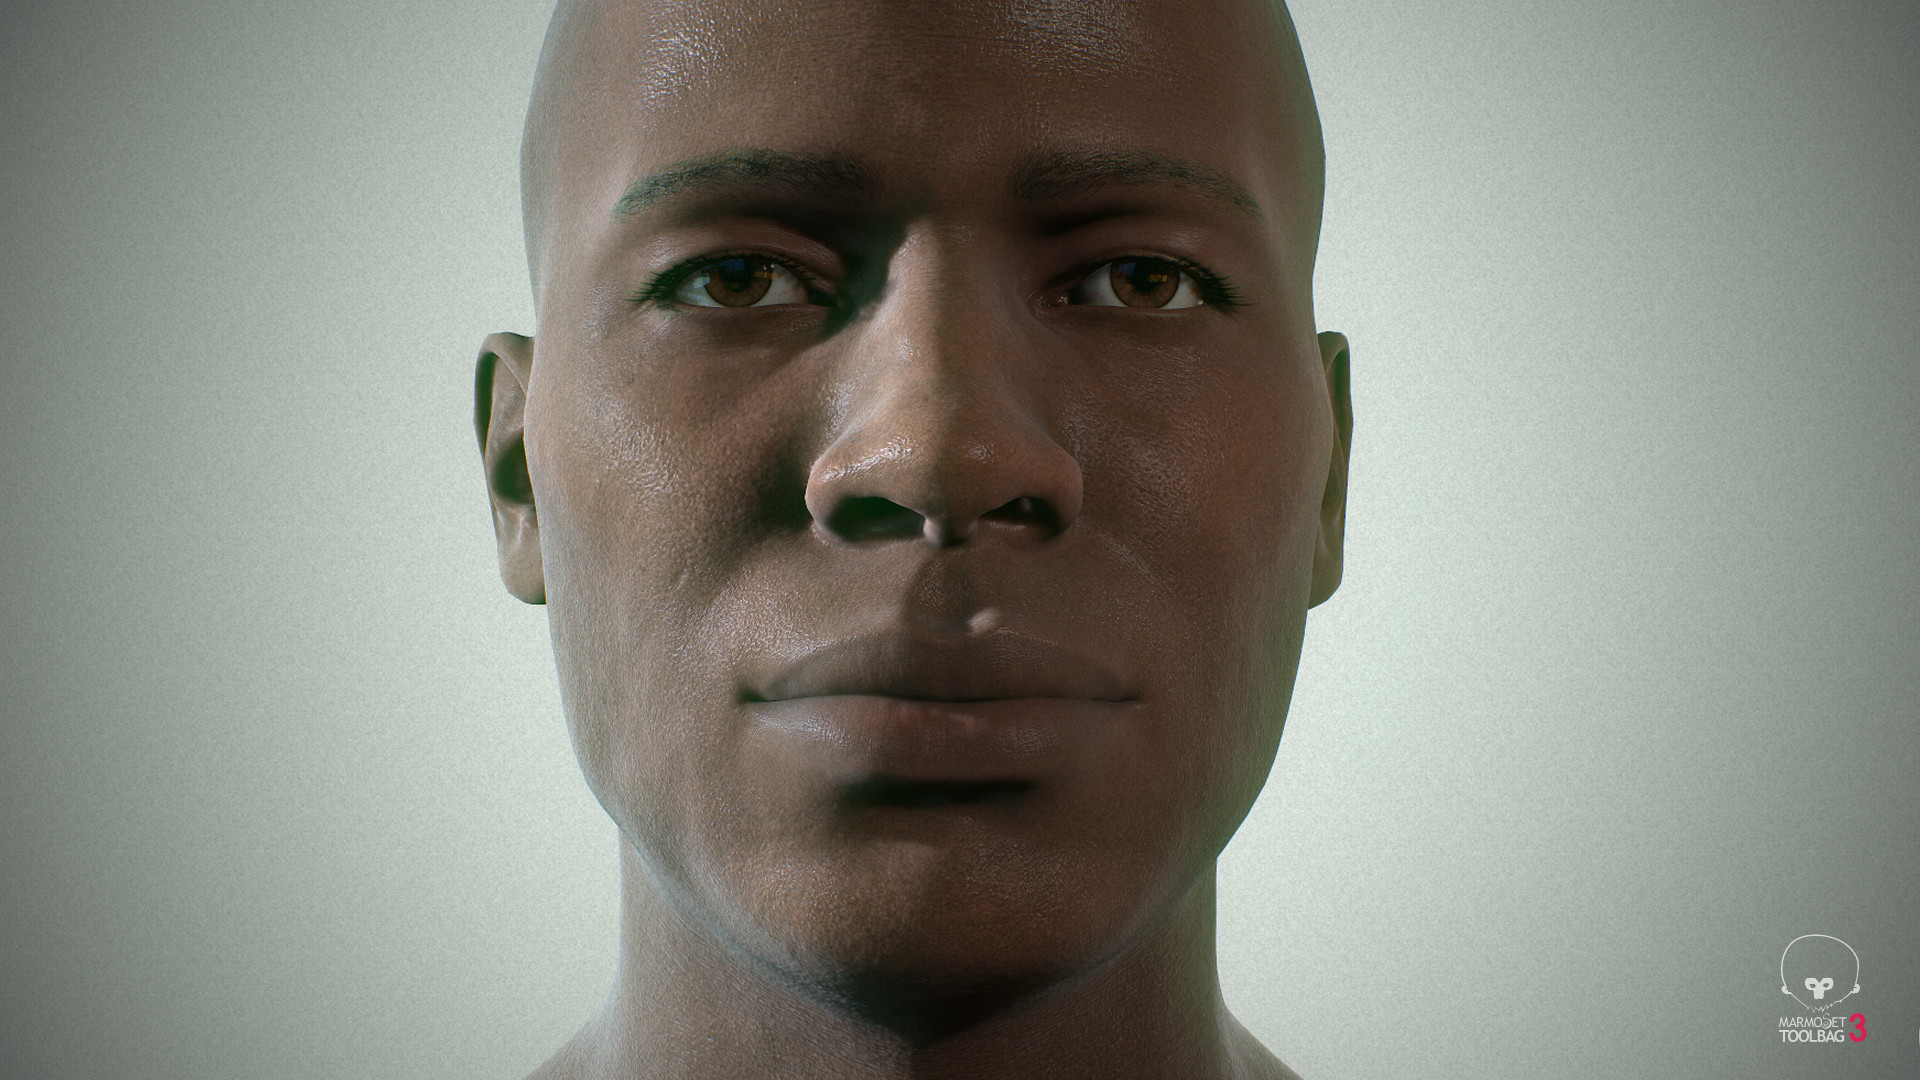 Alex lashko averageblackmale by alexlashko marmoset 13